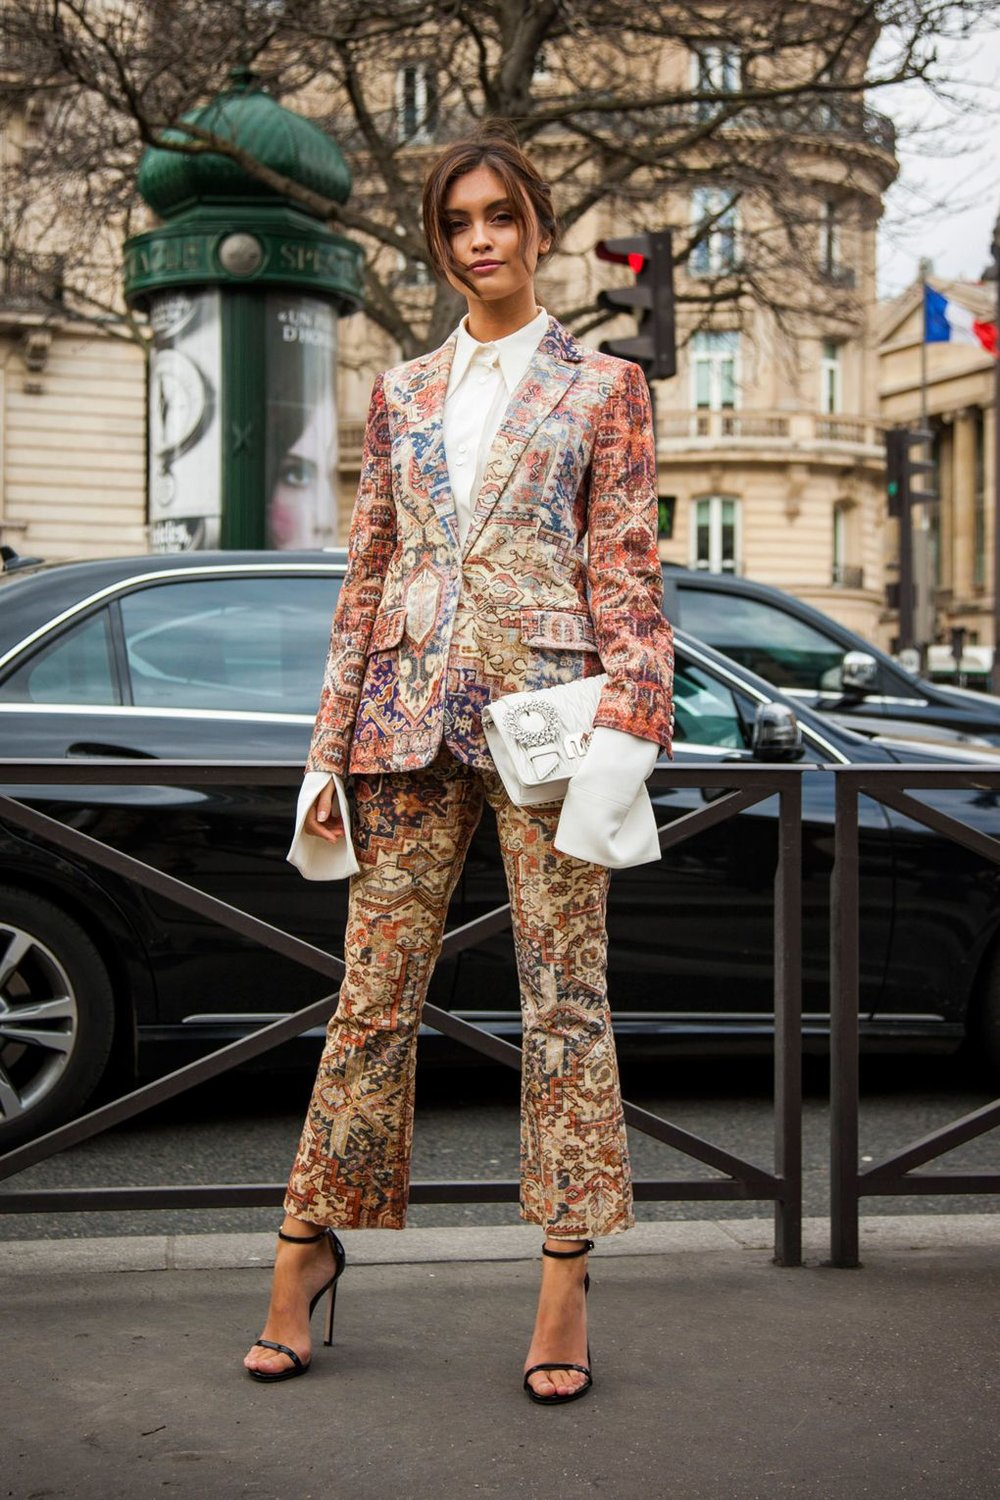 pfw printed suit.jpeg